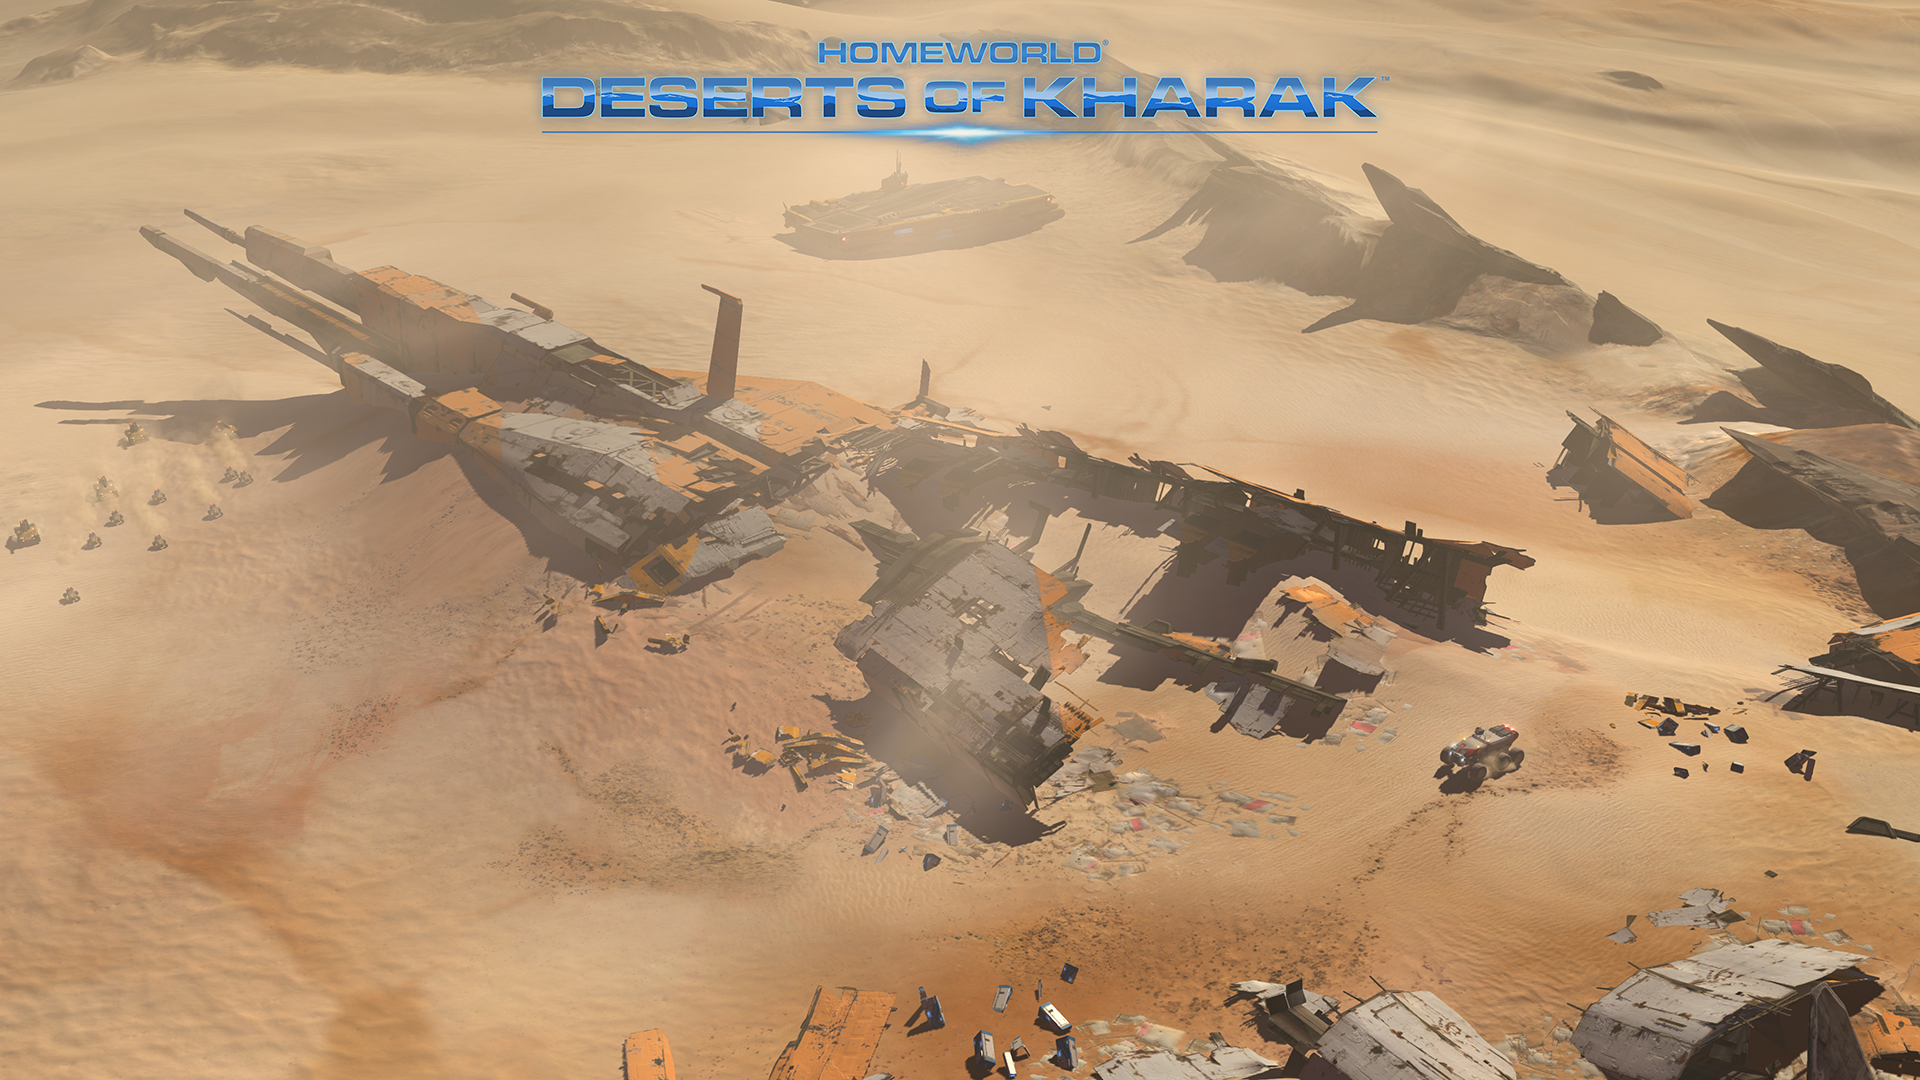 Homeworld.Deserts.of.Kharak-CODEX image 1